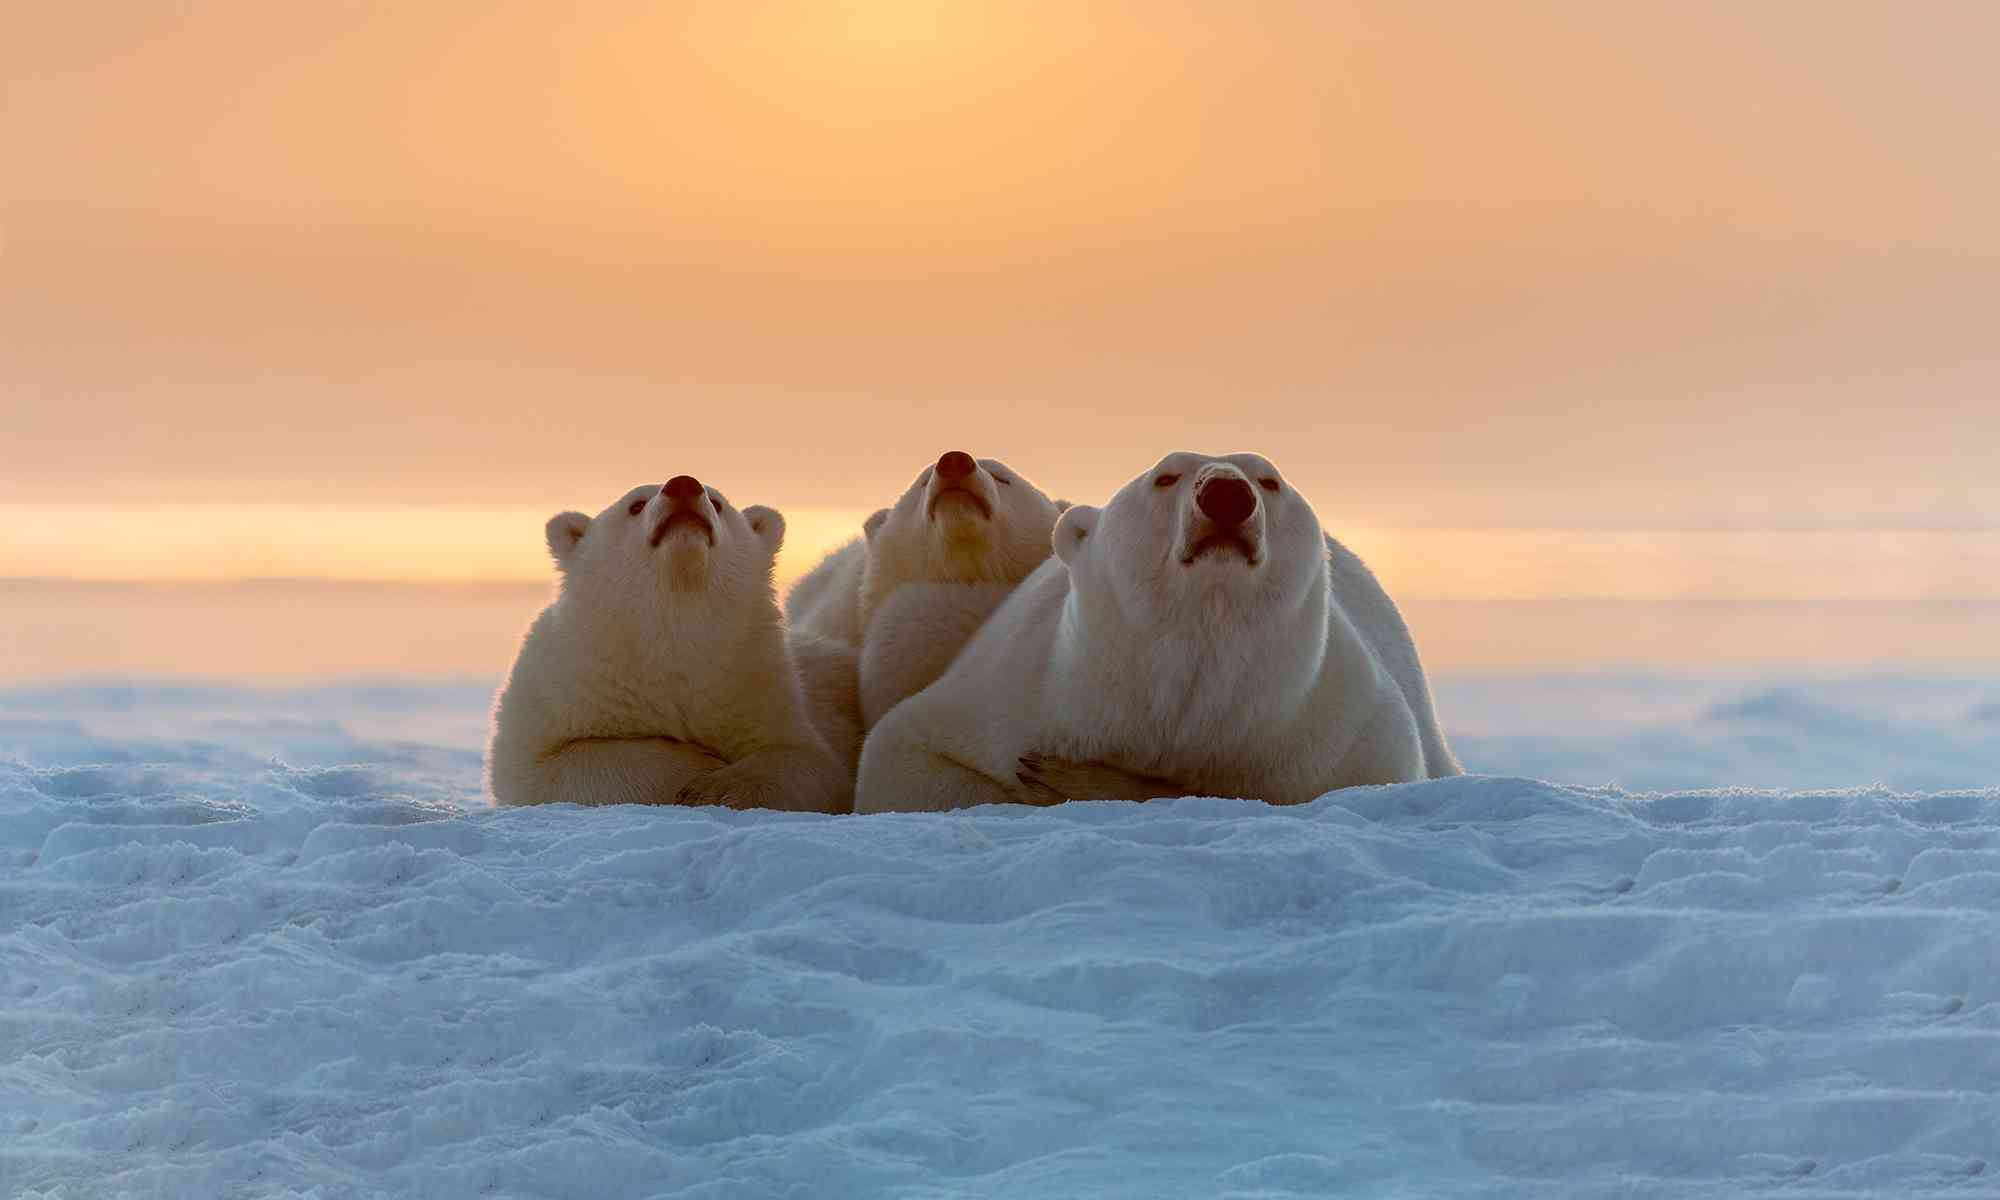 How Climate Change Affects Wildlife A Warmer World From Polar Bears to Butterflies